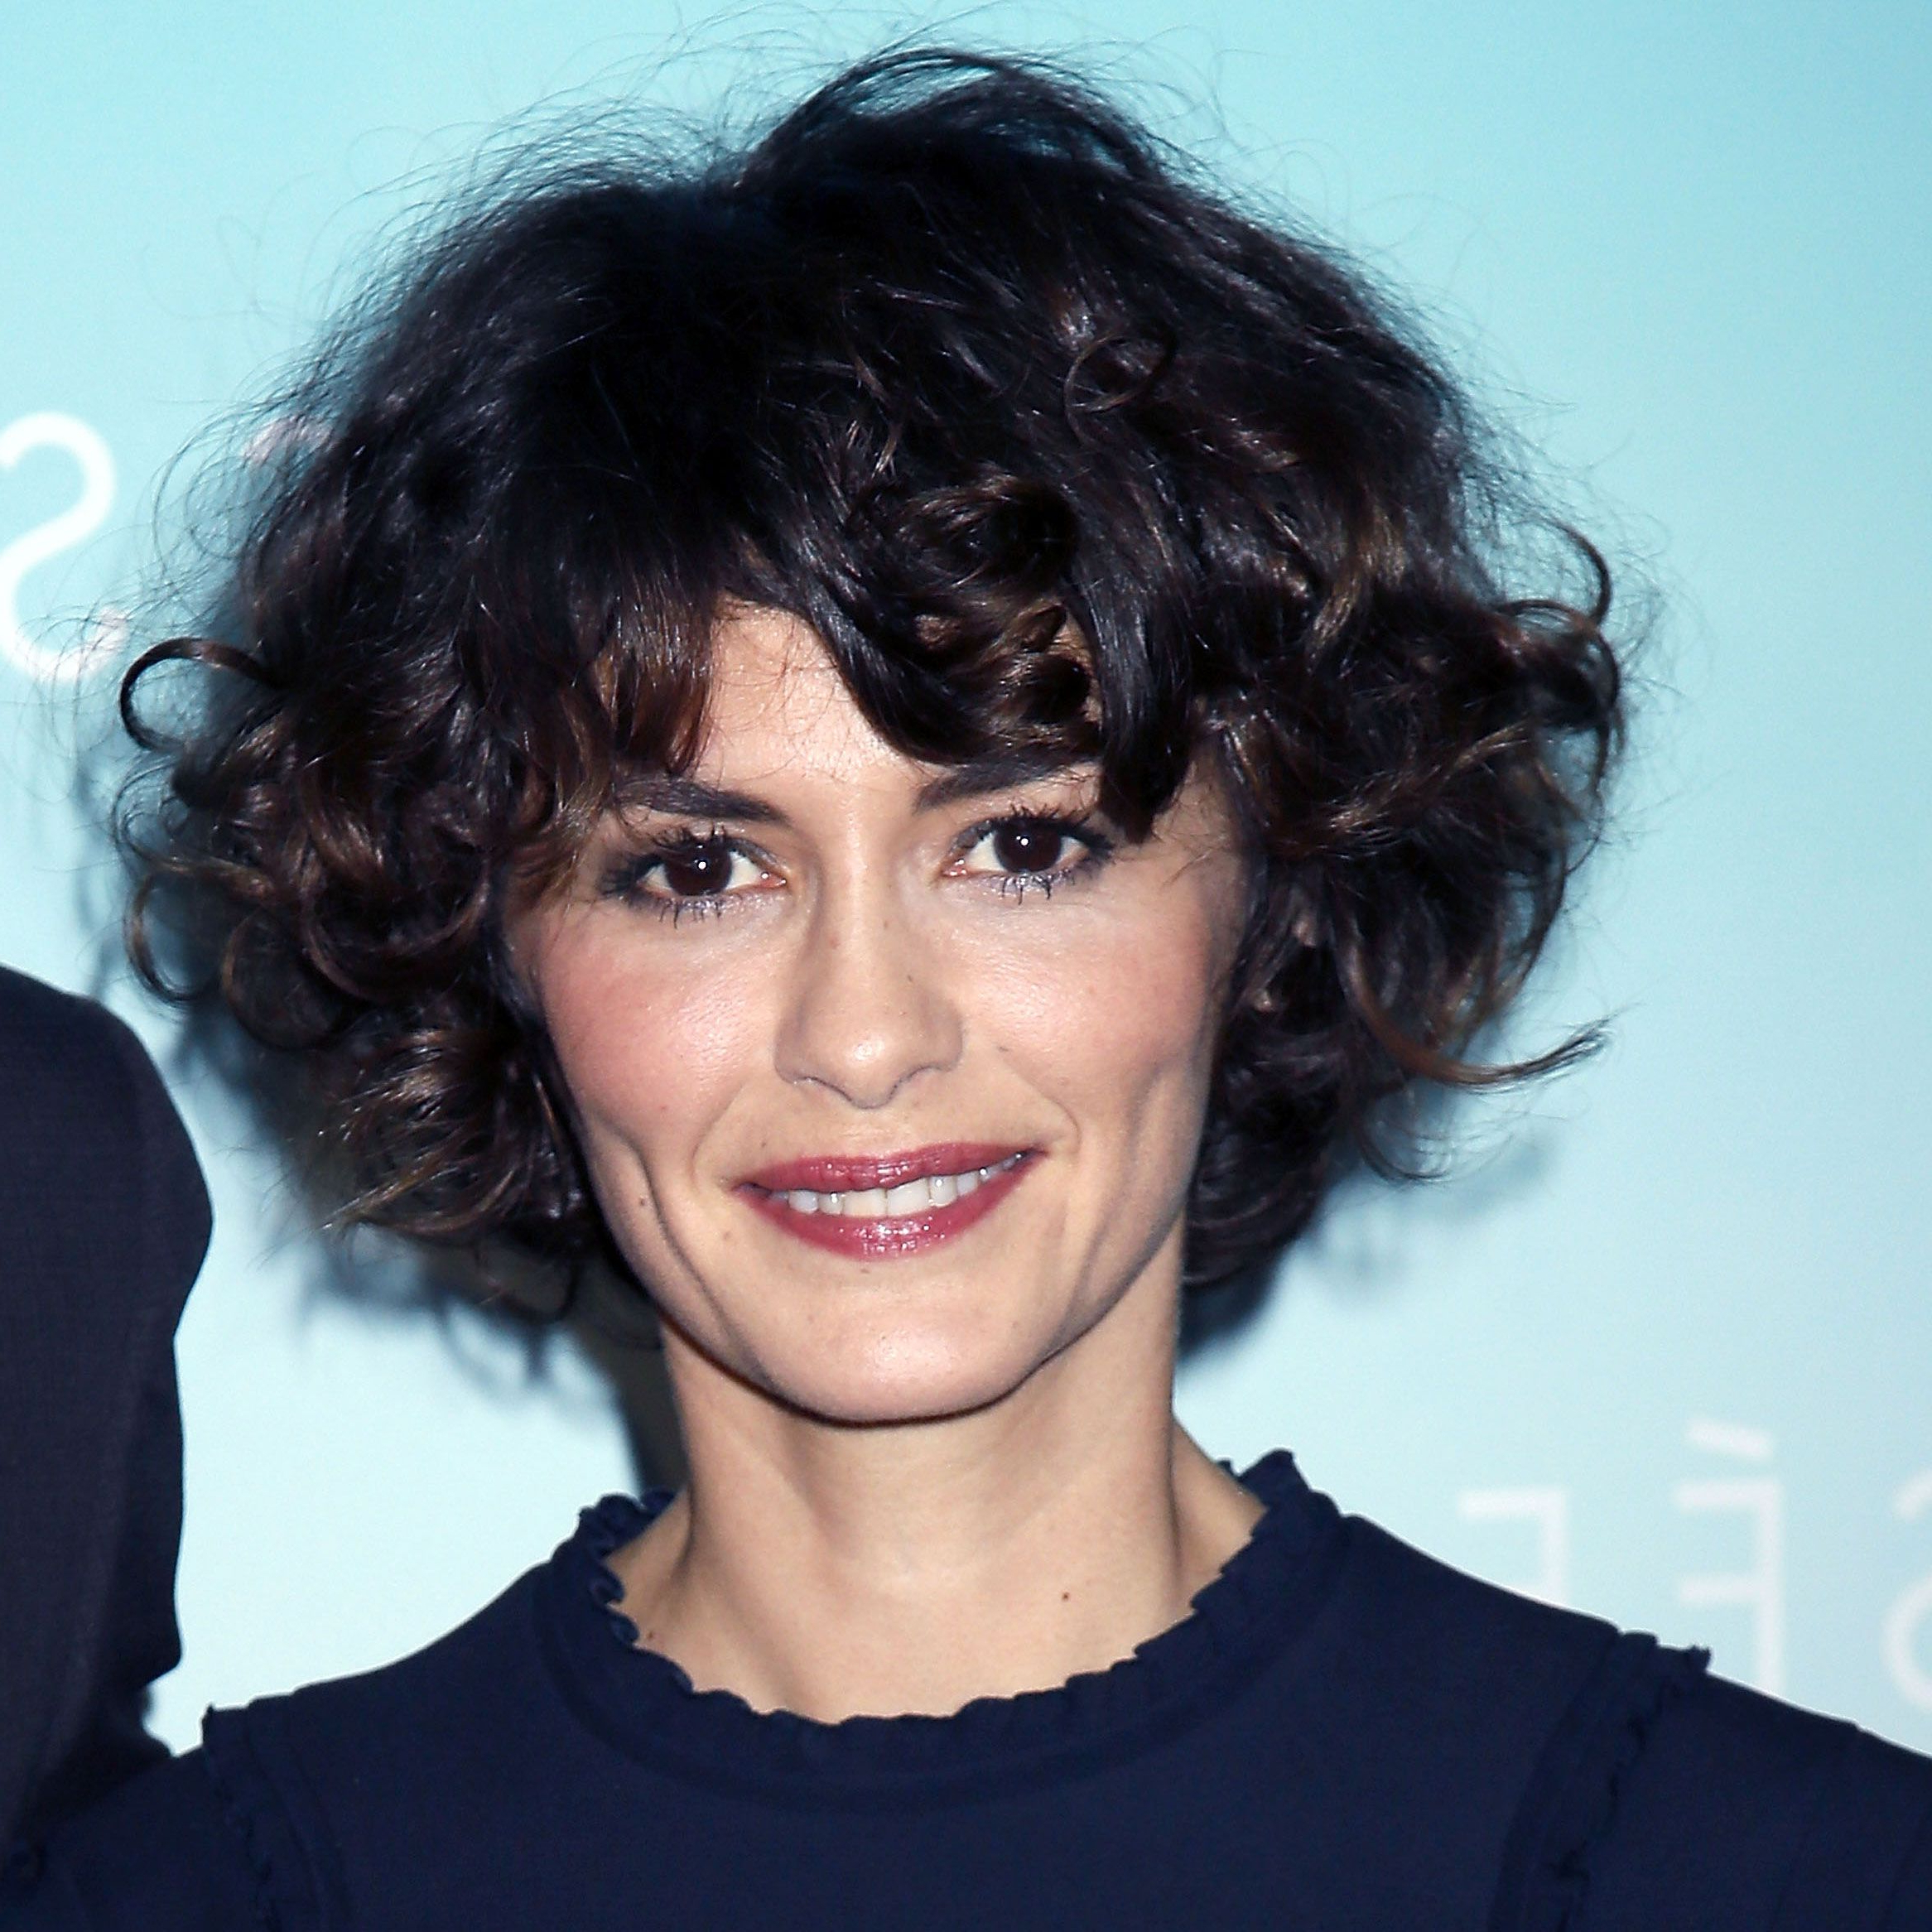 87 Cute Short Hairstyles—And How To Pull Them Off | Hairstyles Intended For Audrey Tautou Short Haircuts (View 16 of 25)